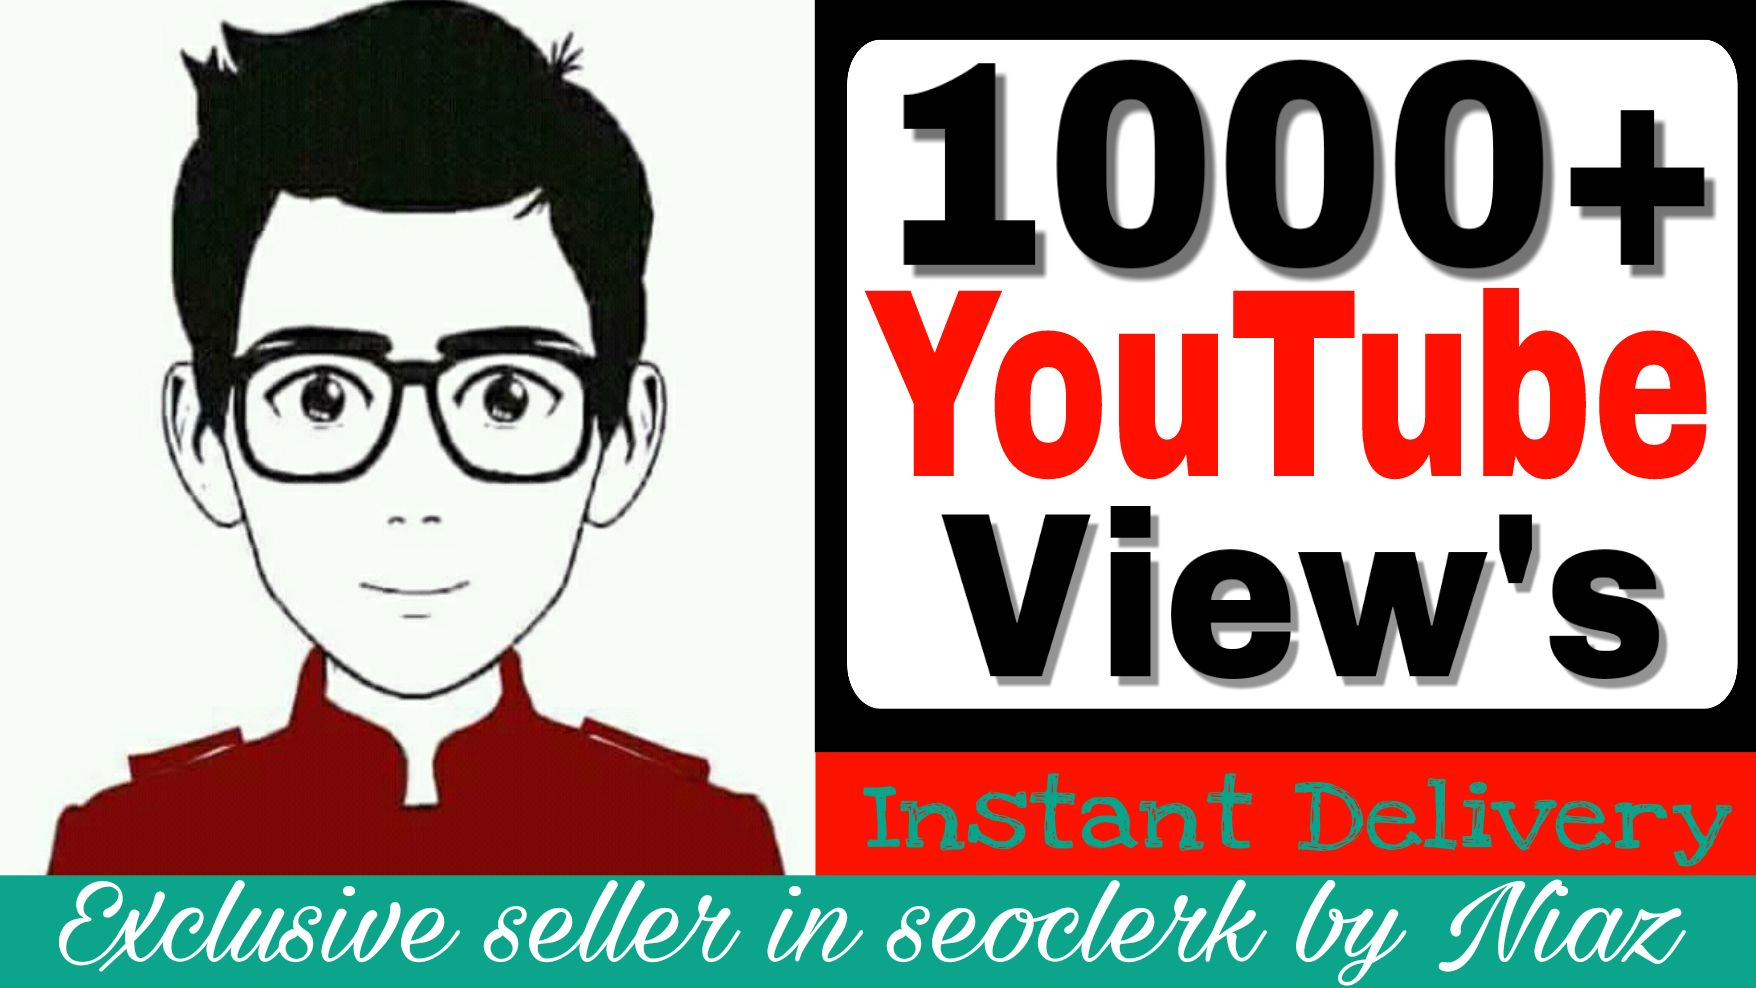 Fantastic Deals 1000+ High Quality Views And Supper Fast Delivery